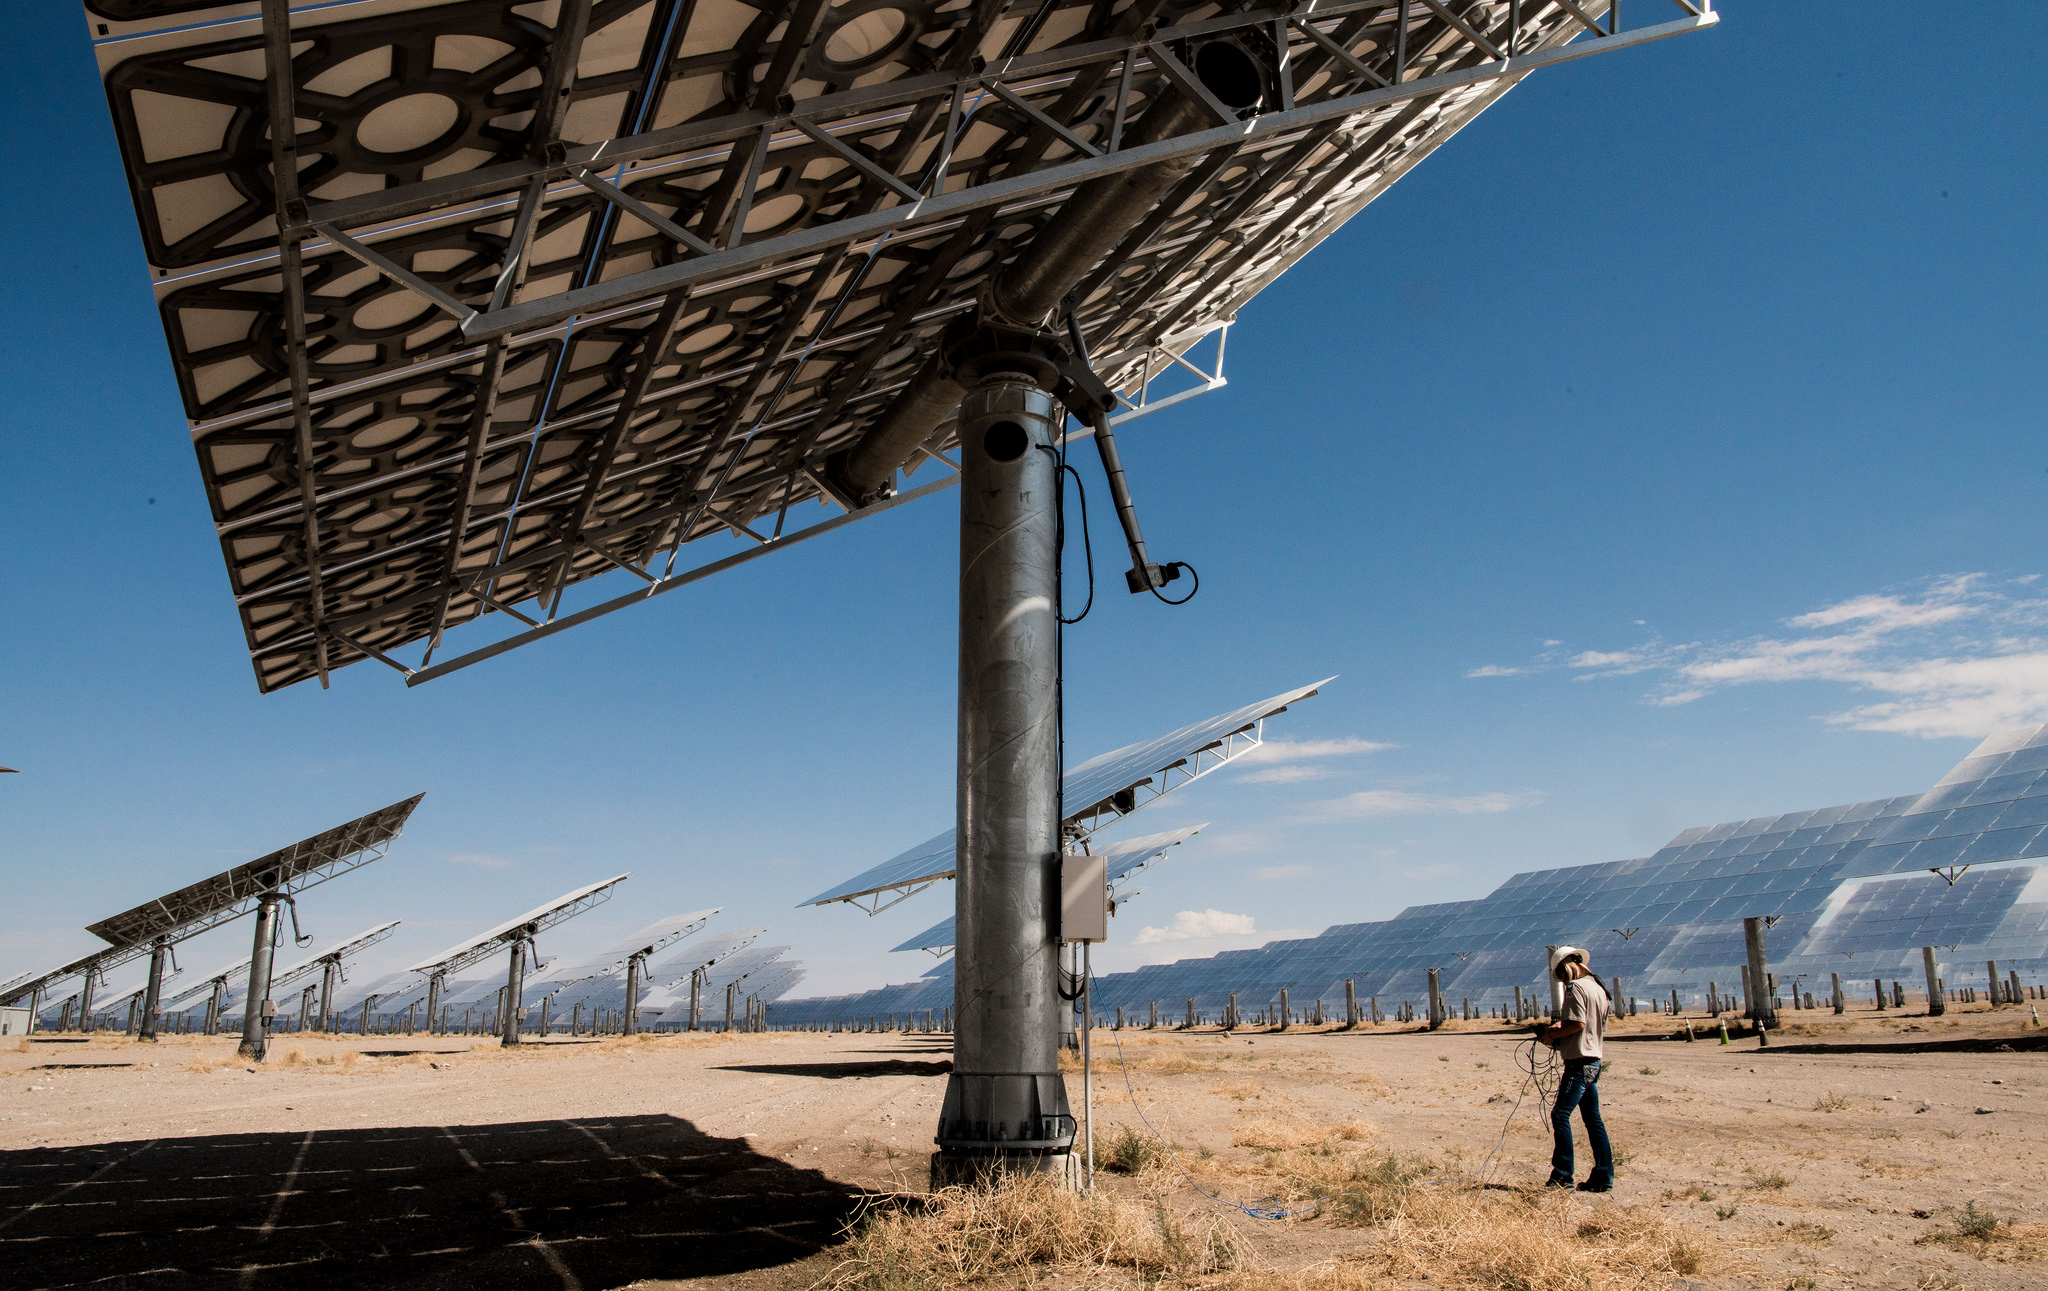 A solar thermal plant in Nevada